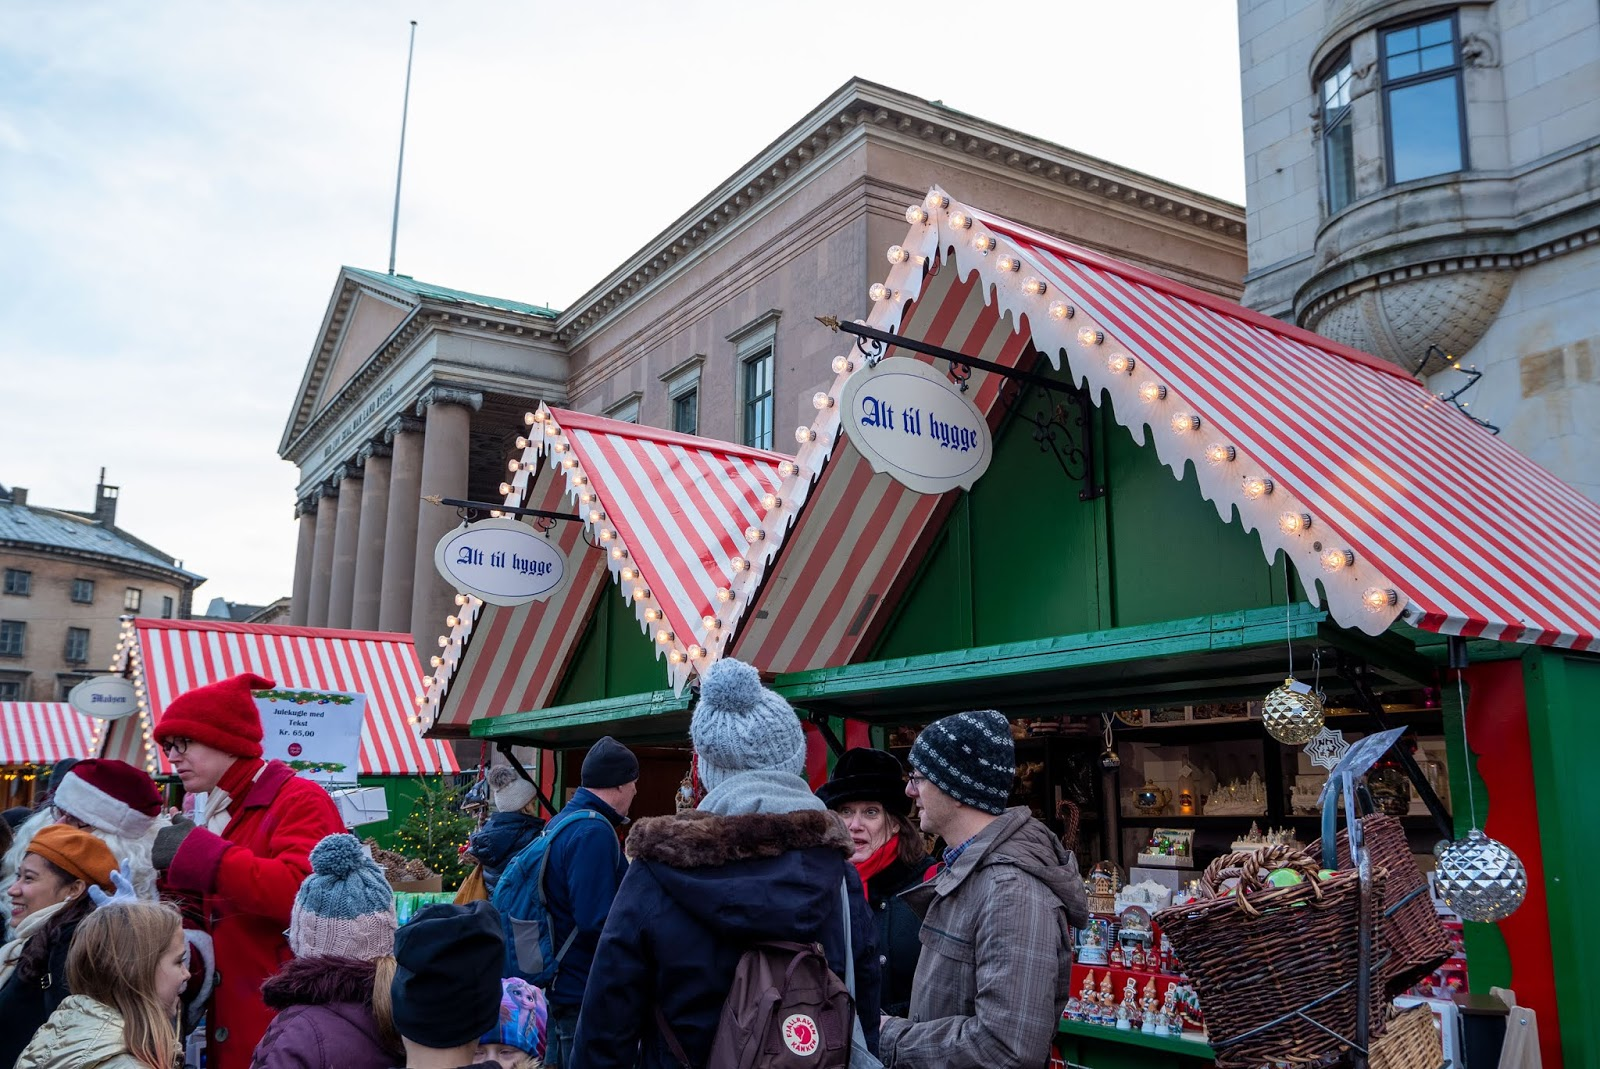 Stalls at the Hans Christian Andersen Christmas Market in Copenhagen, Denmark